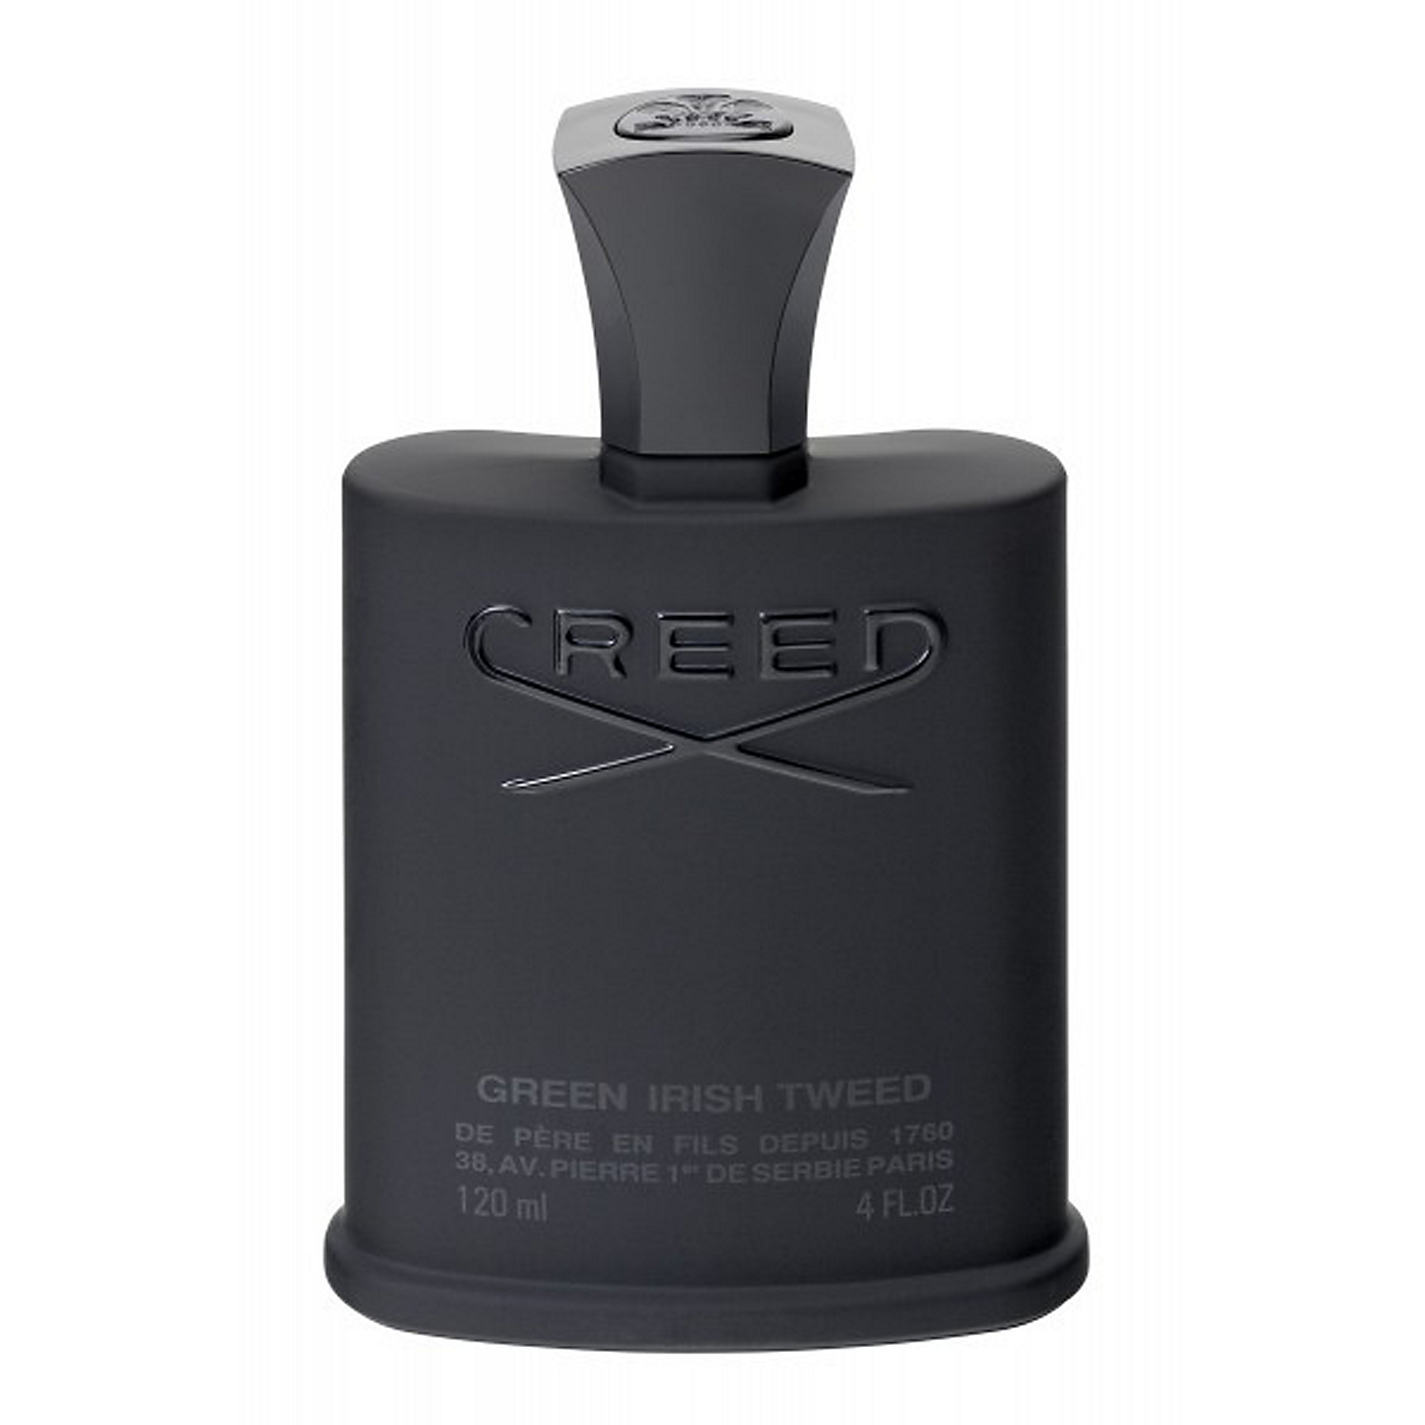 GREEN IRISH TWEED by CREED 5ml TRAVEL SPRAY Perfume Lemon Ambergris